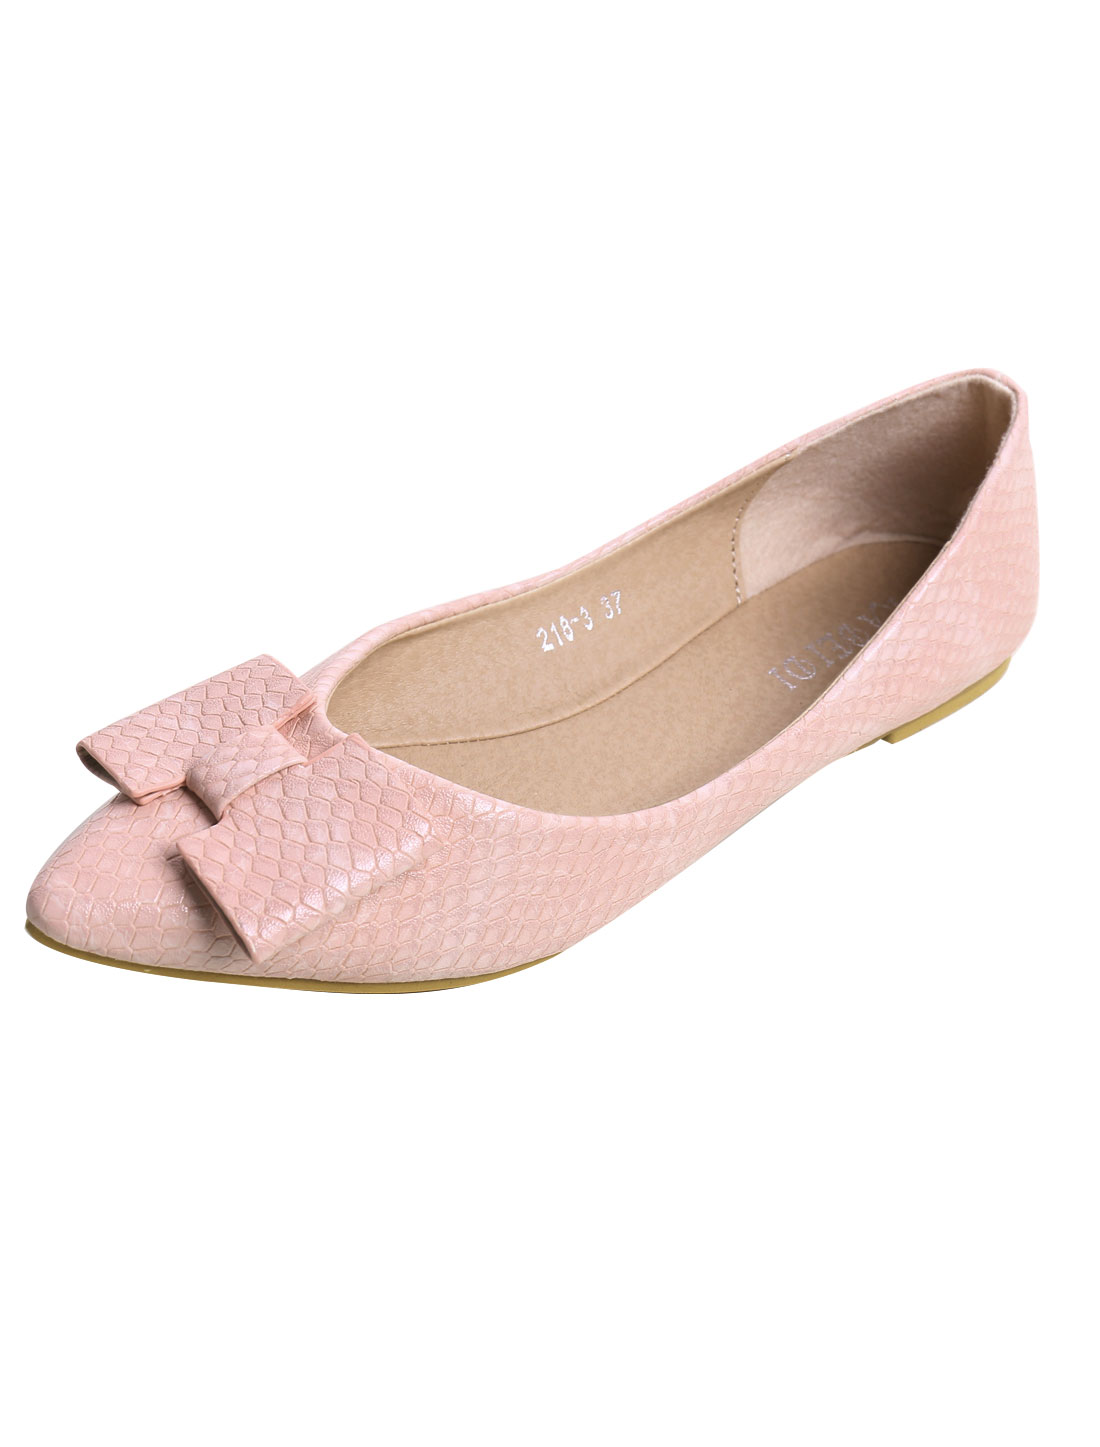 Lady Snake-effect Faux Leather Bow Pointed Flats Pink US 7.5